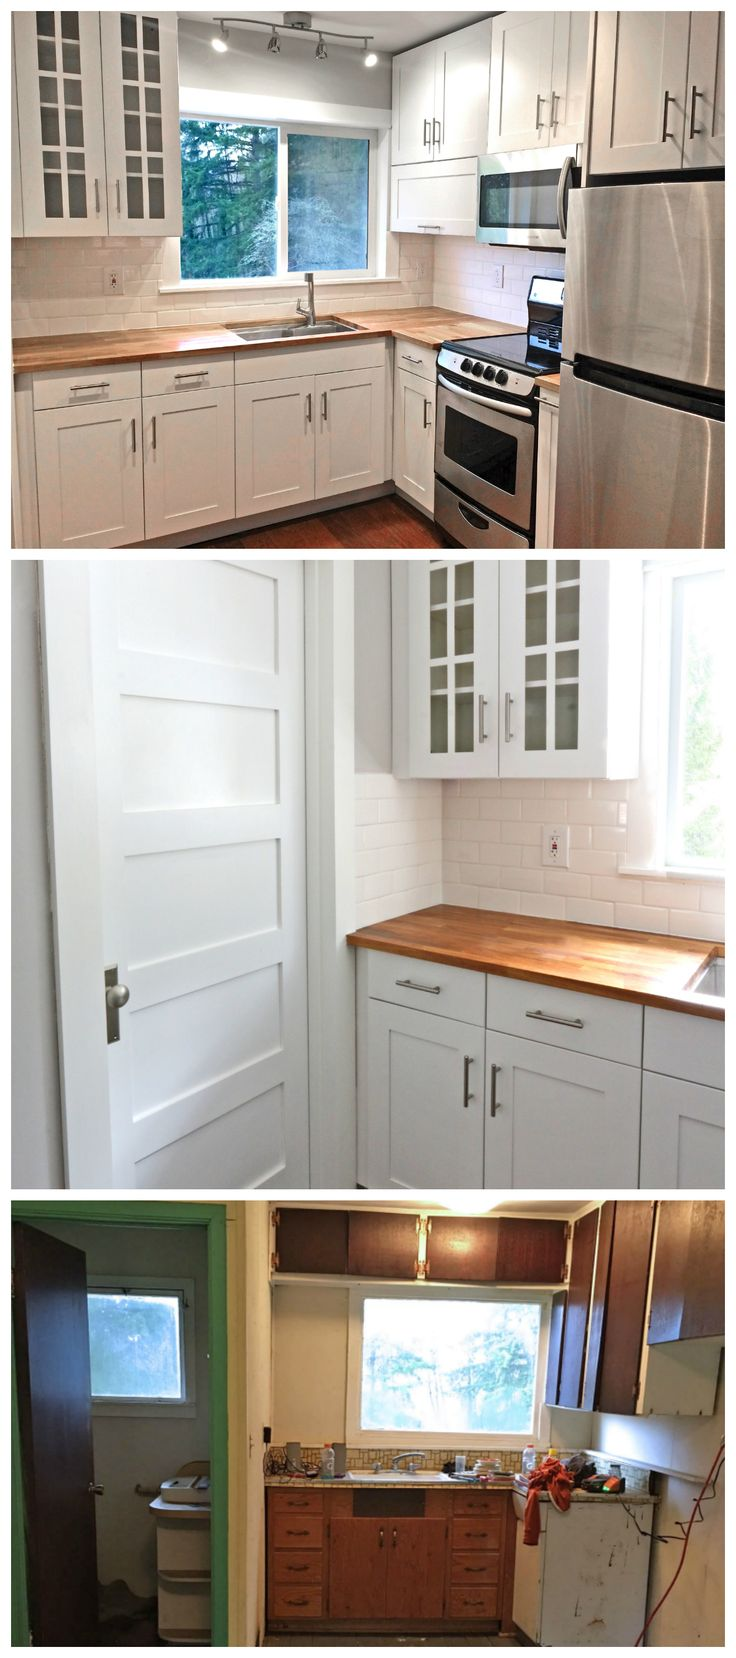 B82944 kitchen cabinets diy kitchens - 110 Best Gourmet Kitchens Ideas Images On Pinterest Gourmet Kitchen Ideas And Diy Kitchen Remodel